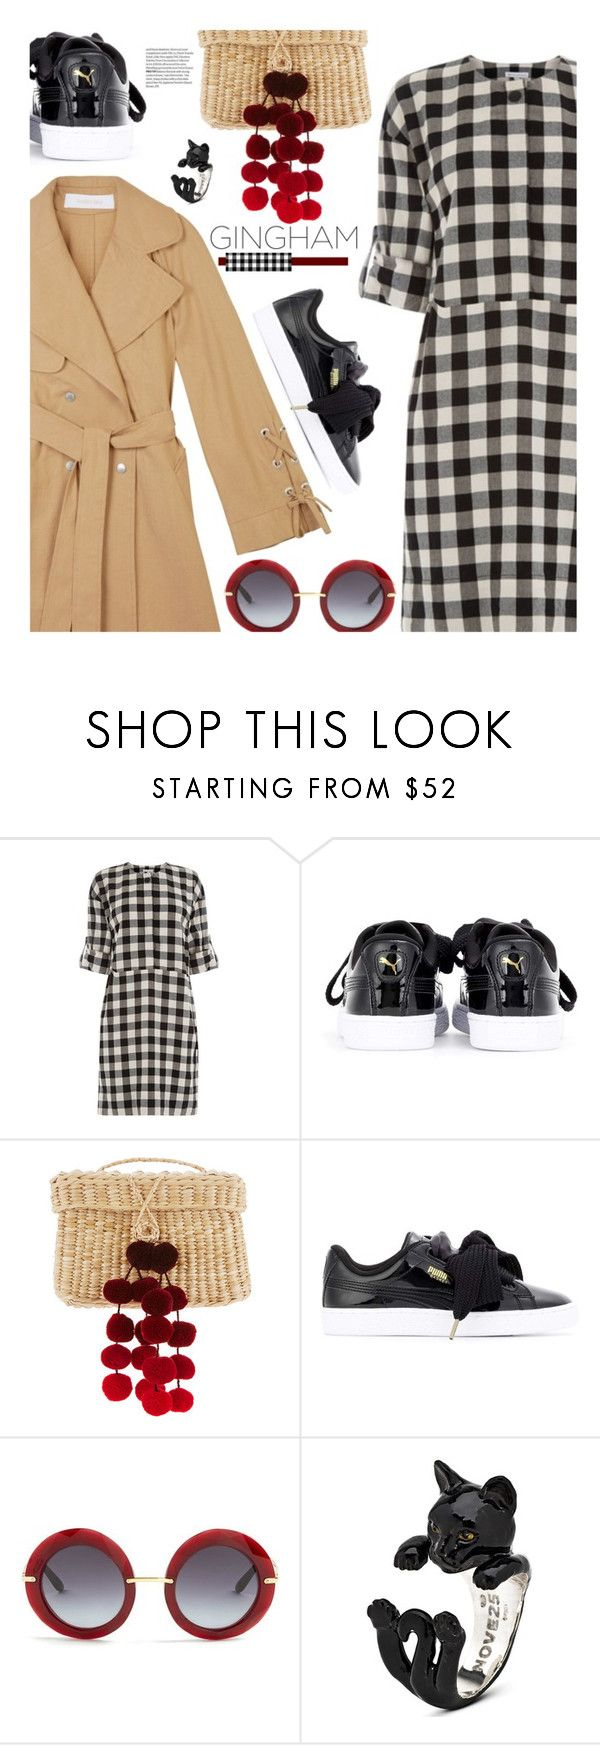 """Check Republic: Gingham Dress"" by hamaly ❤ liked on Polyvore featuring Nannacay, Puma, outfit, ootd, dresses and gingham"